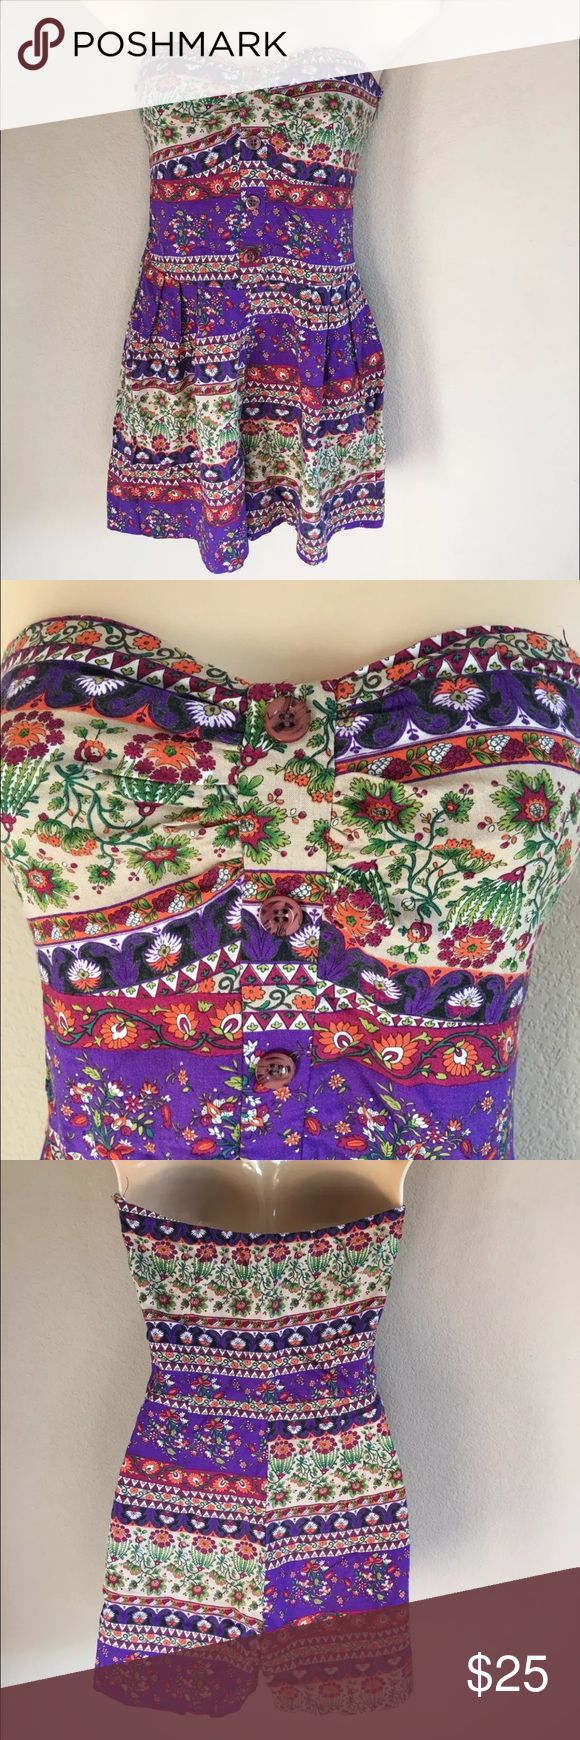 """Modcloth Boho Chic Hippie Floral Printed Romper This romper is in great condition. It is a romper from the brand Audrey 3+1 , which is a Modcloth brand. The bottom of the zipper had to be restitched, but it is not noticeable and does not interfere with zipper function. The size tag is missing but it is most likely a small or a size 2 or 4 as that is my usual size. Please read measurements to ensure fit: pit to pit 13.5"""", waist 26, length 22"""" audrey 3+1 Dresses"""